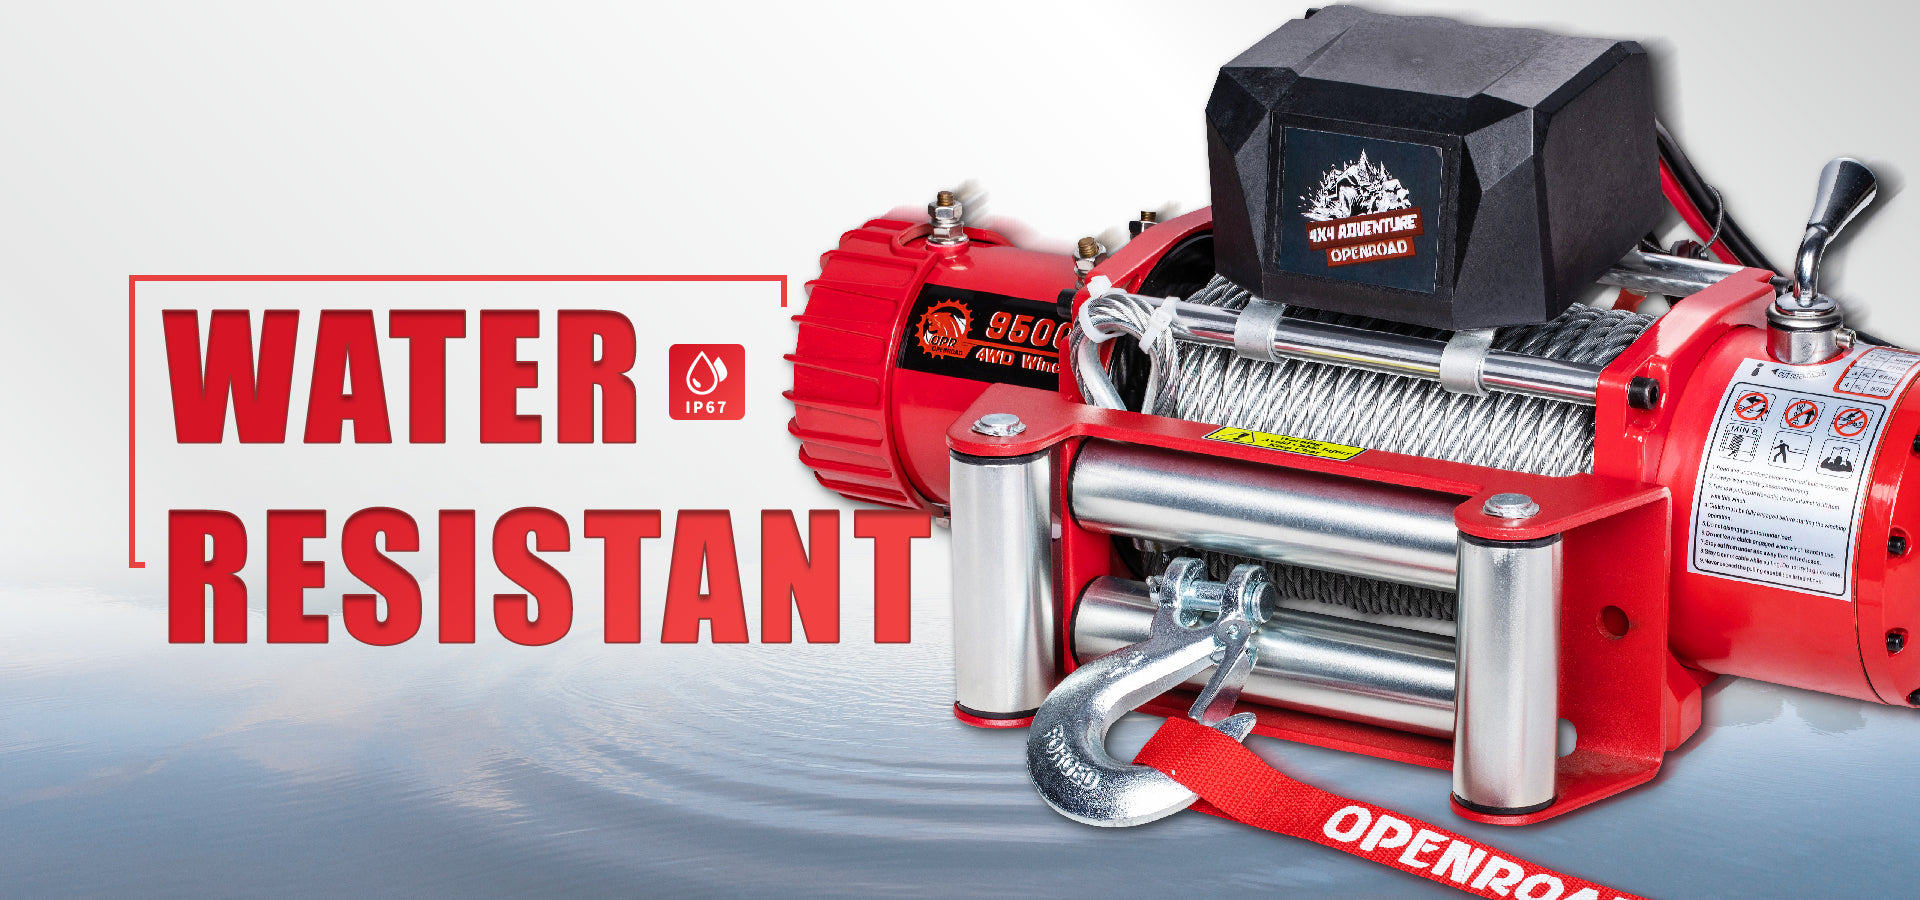 openroad-9500lb-winch-heat-series1-with-steel-cable